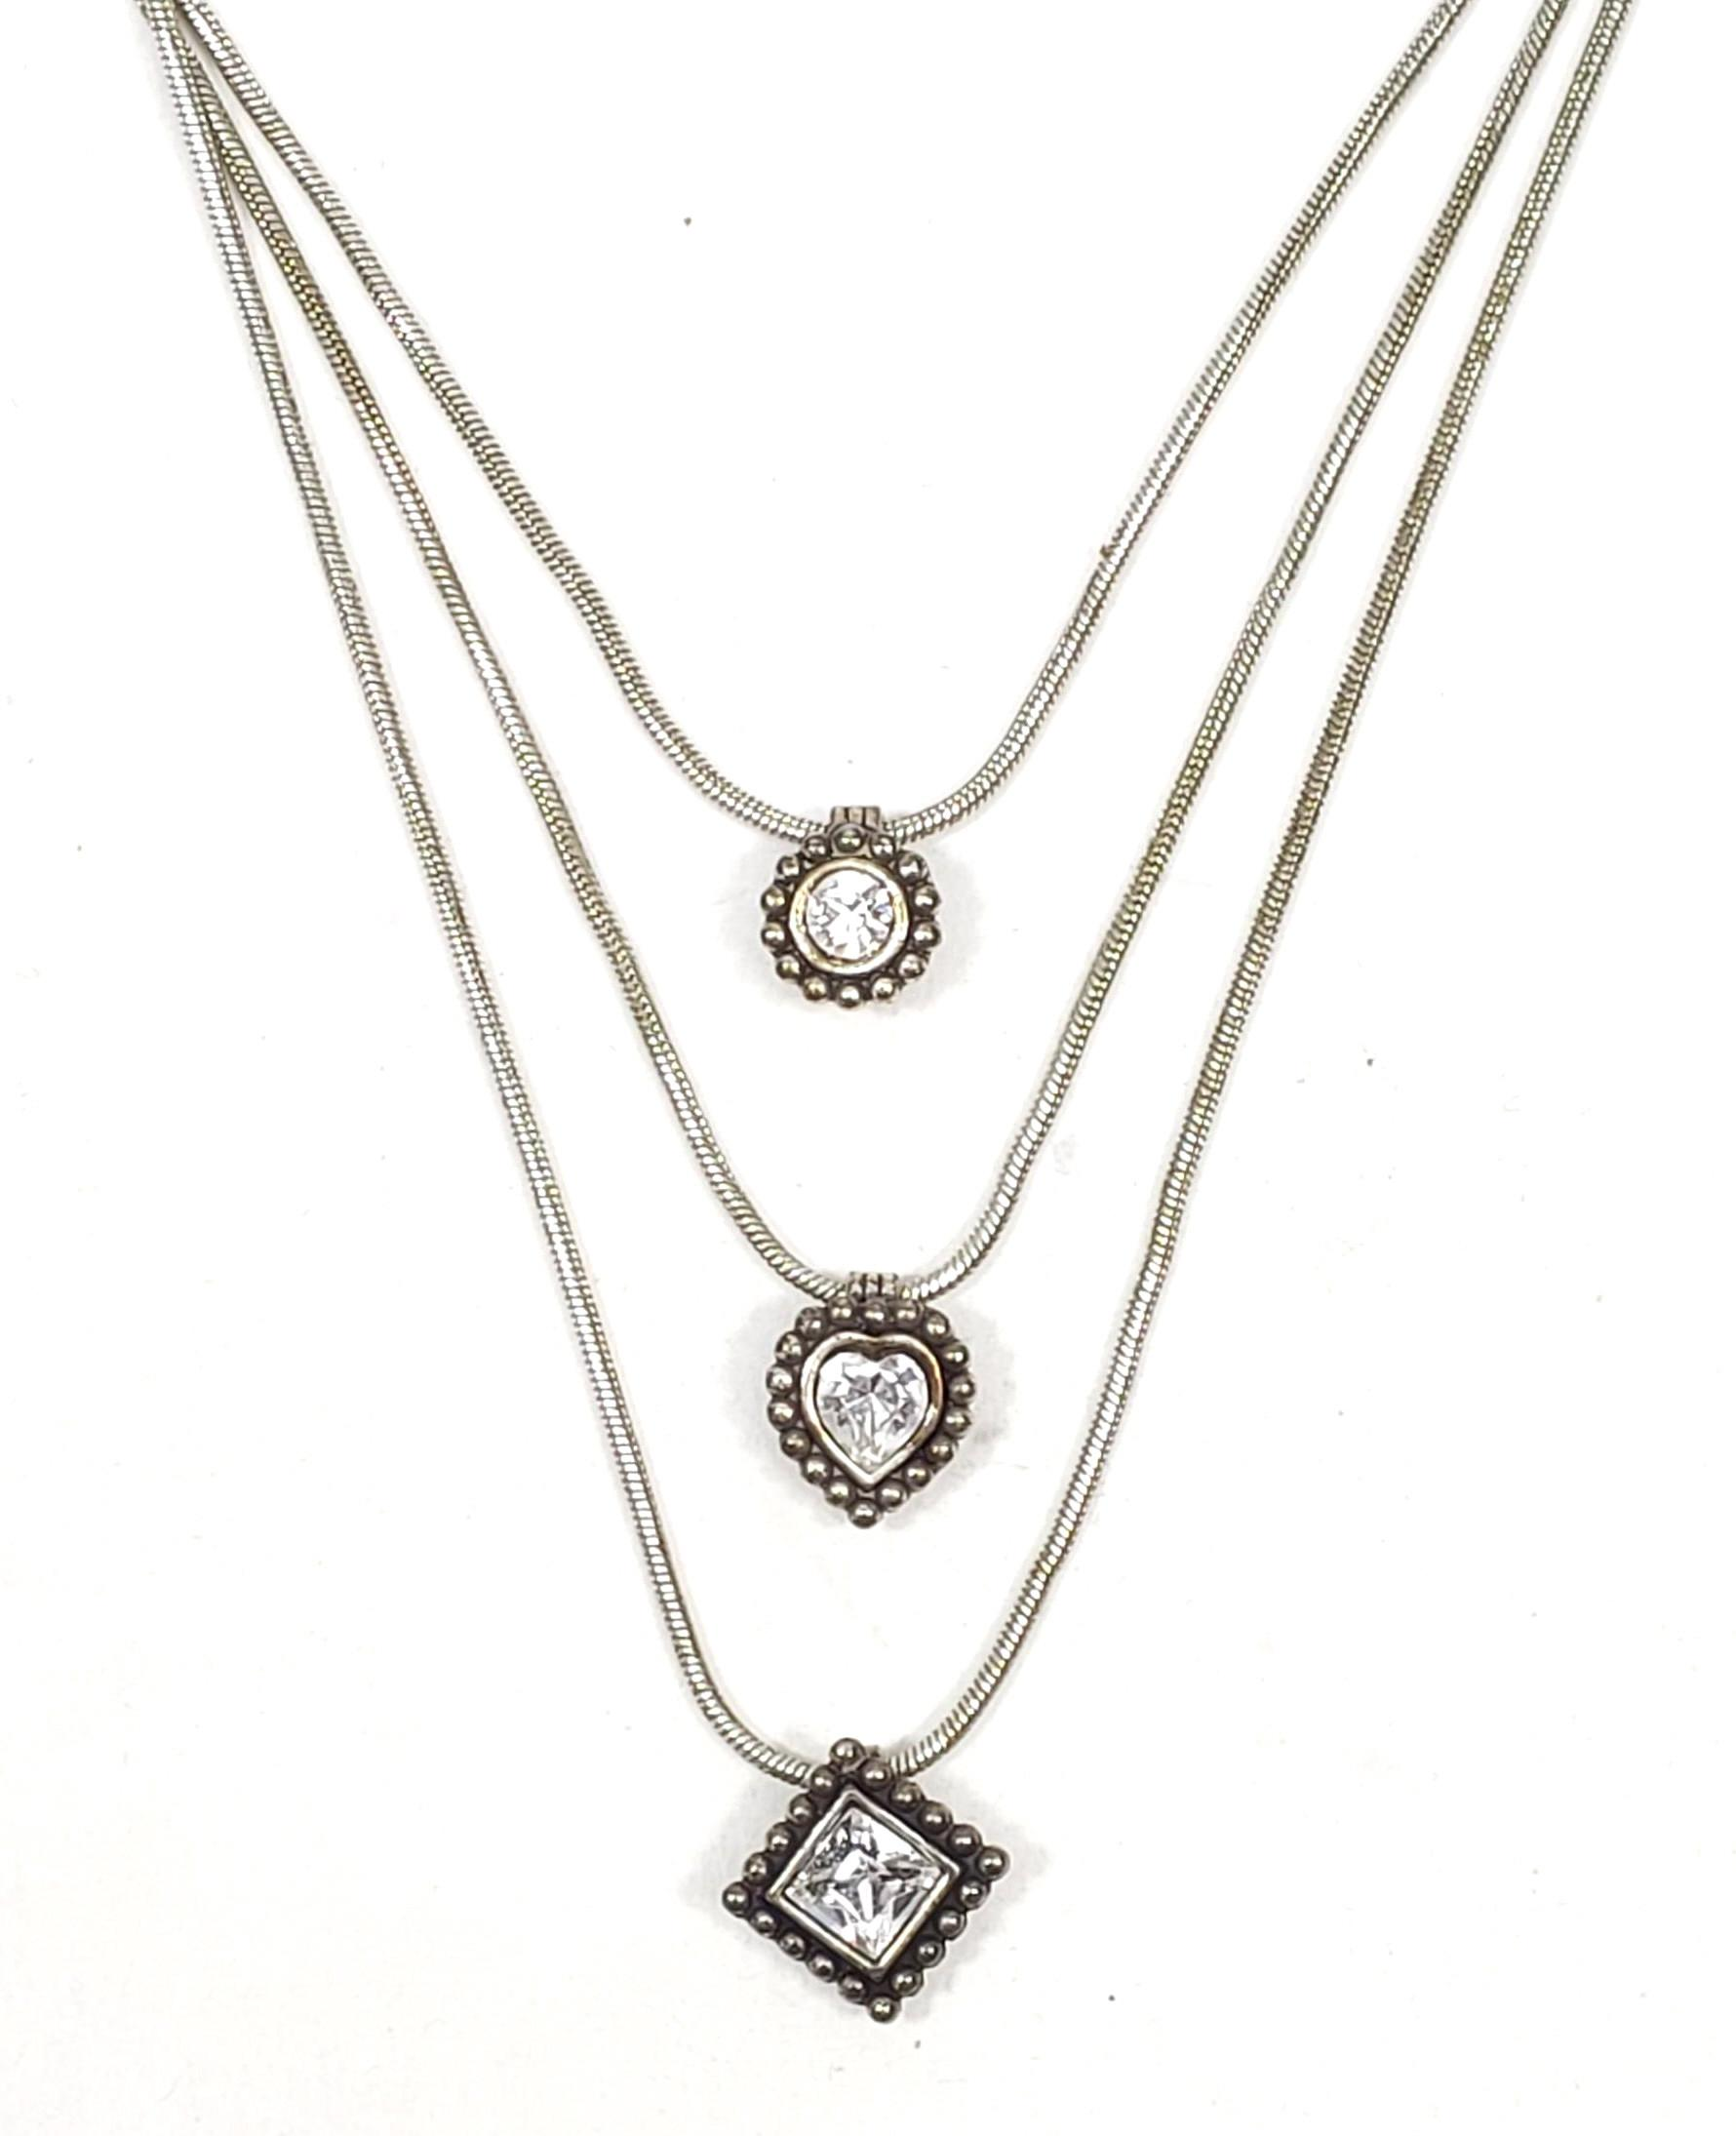 Sterling Silver & Cubic Zirconia Pendant Necklace